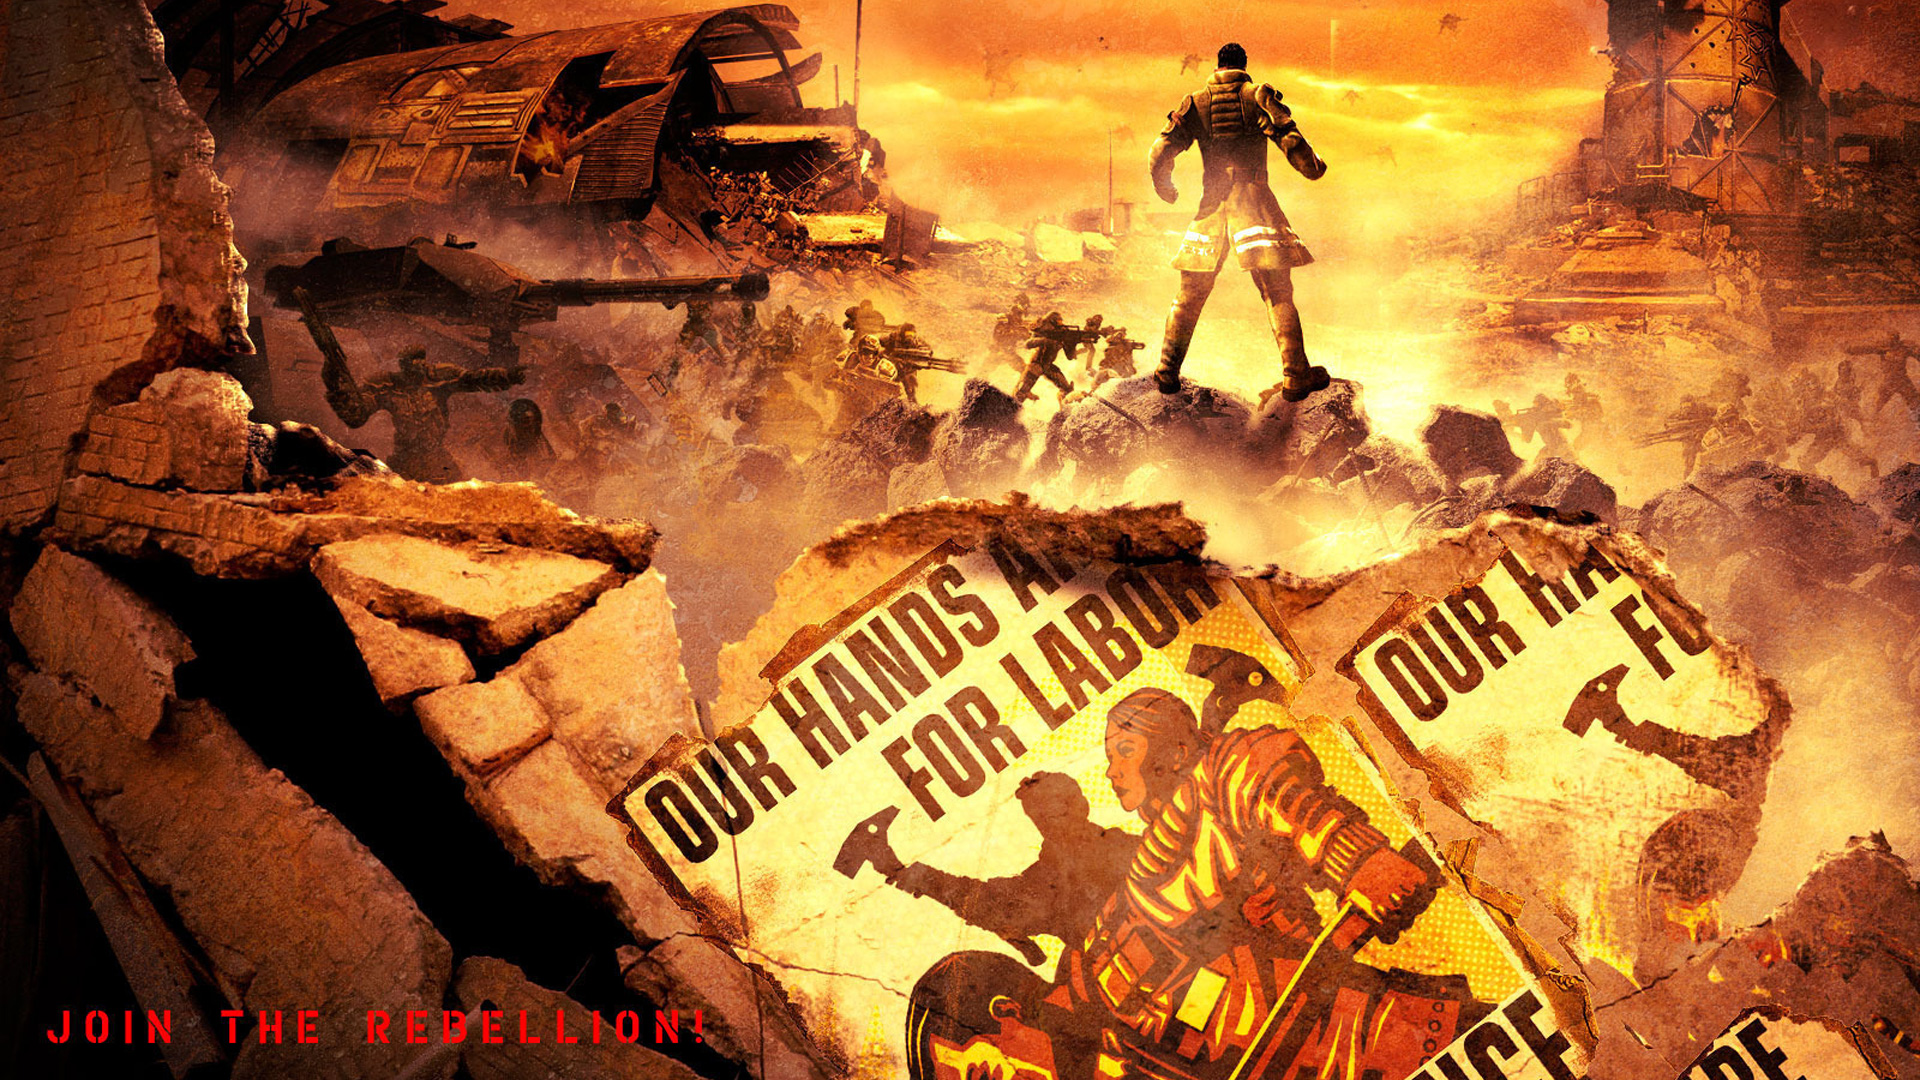 Free Red Faction: Guerrilla Wallpaper in 1920x1080